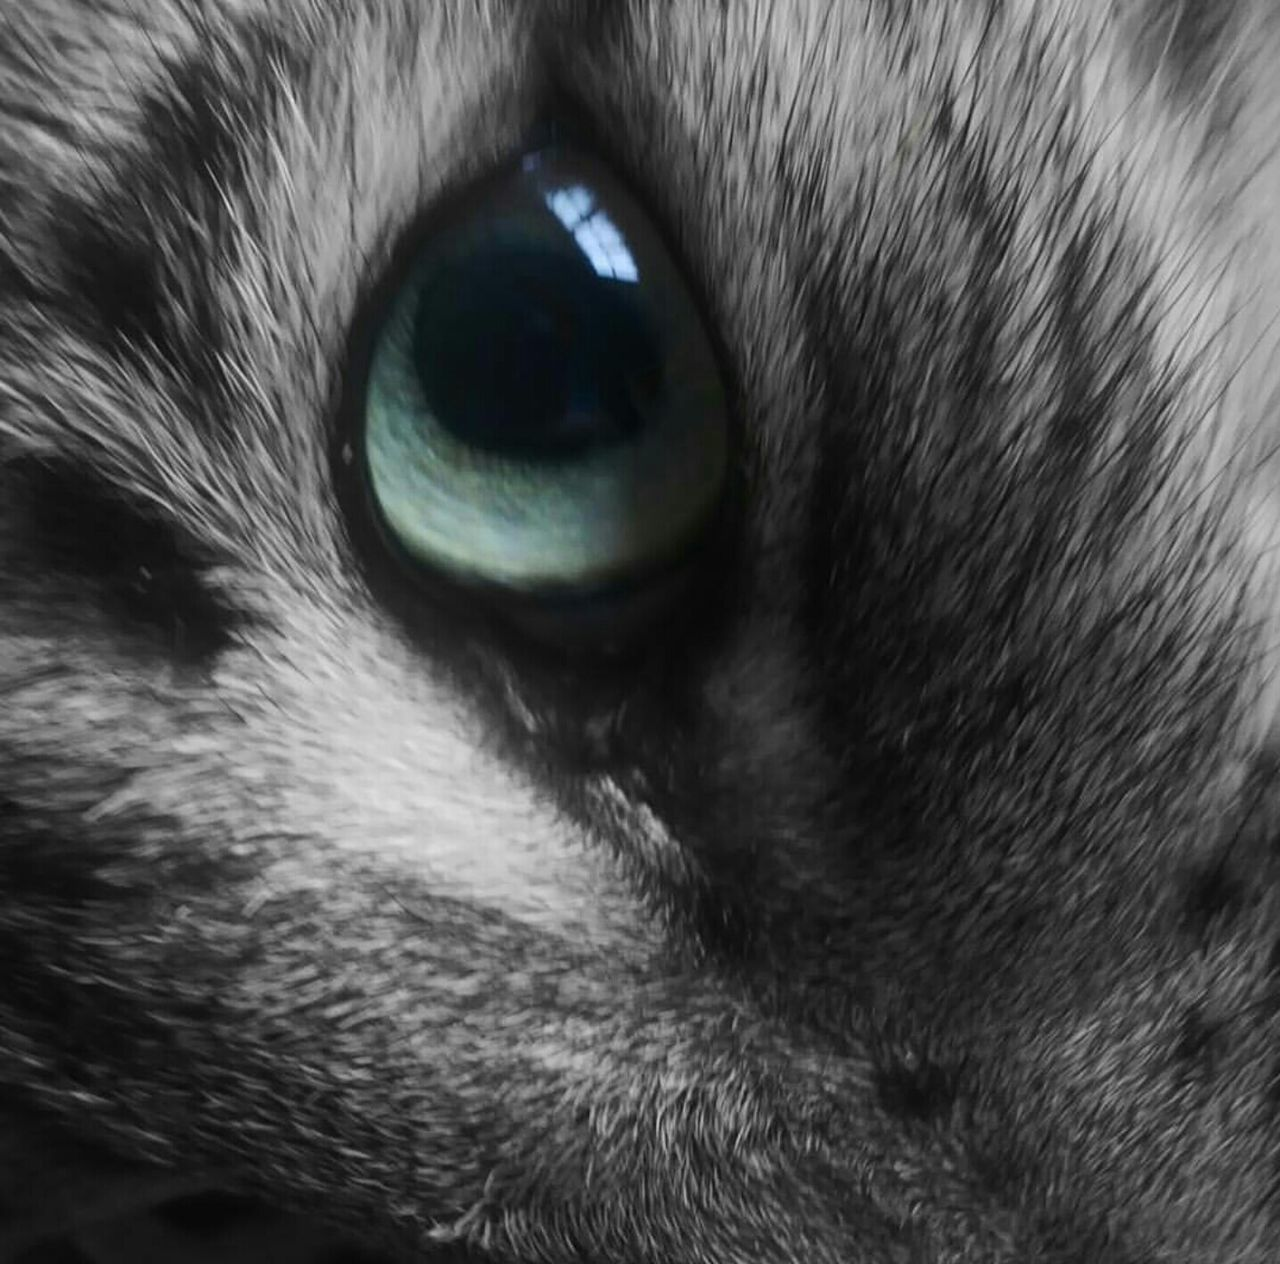 pets, one animal, domestic animals, animal themes, domestic cat, animal head, animal eye, portrait, close-up, mammal, feline, looking at camera, no people, full frame, backgrounds, indoors, day, eyeball